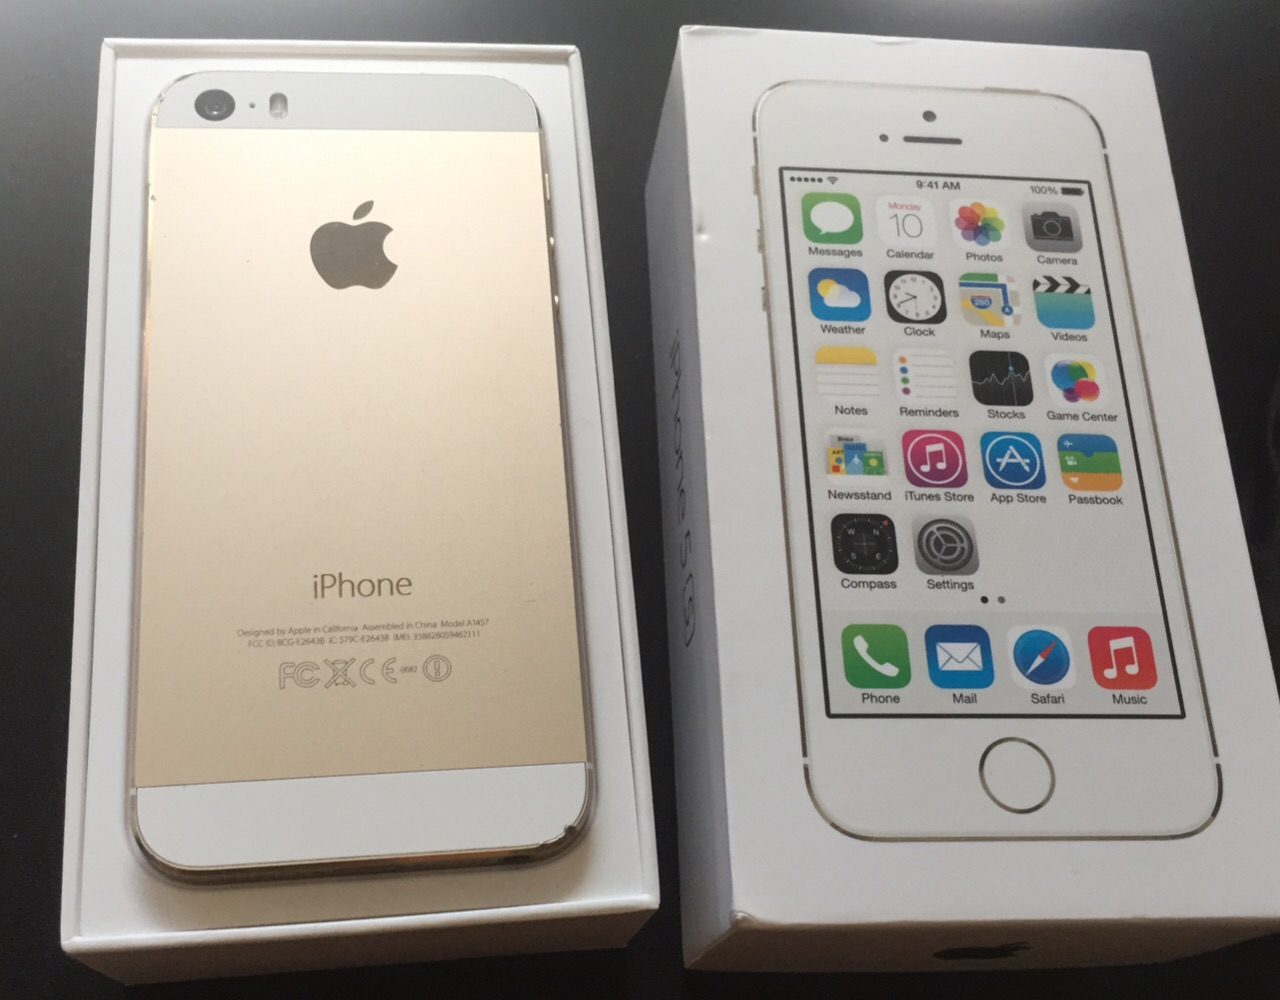 Phone House Iphone 5 Libre Venta Iphone 5s 32 Gb Libre Color Oro Venta Segunda Mano